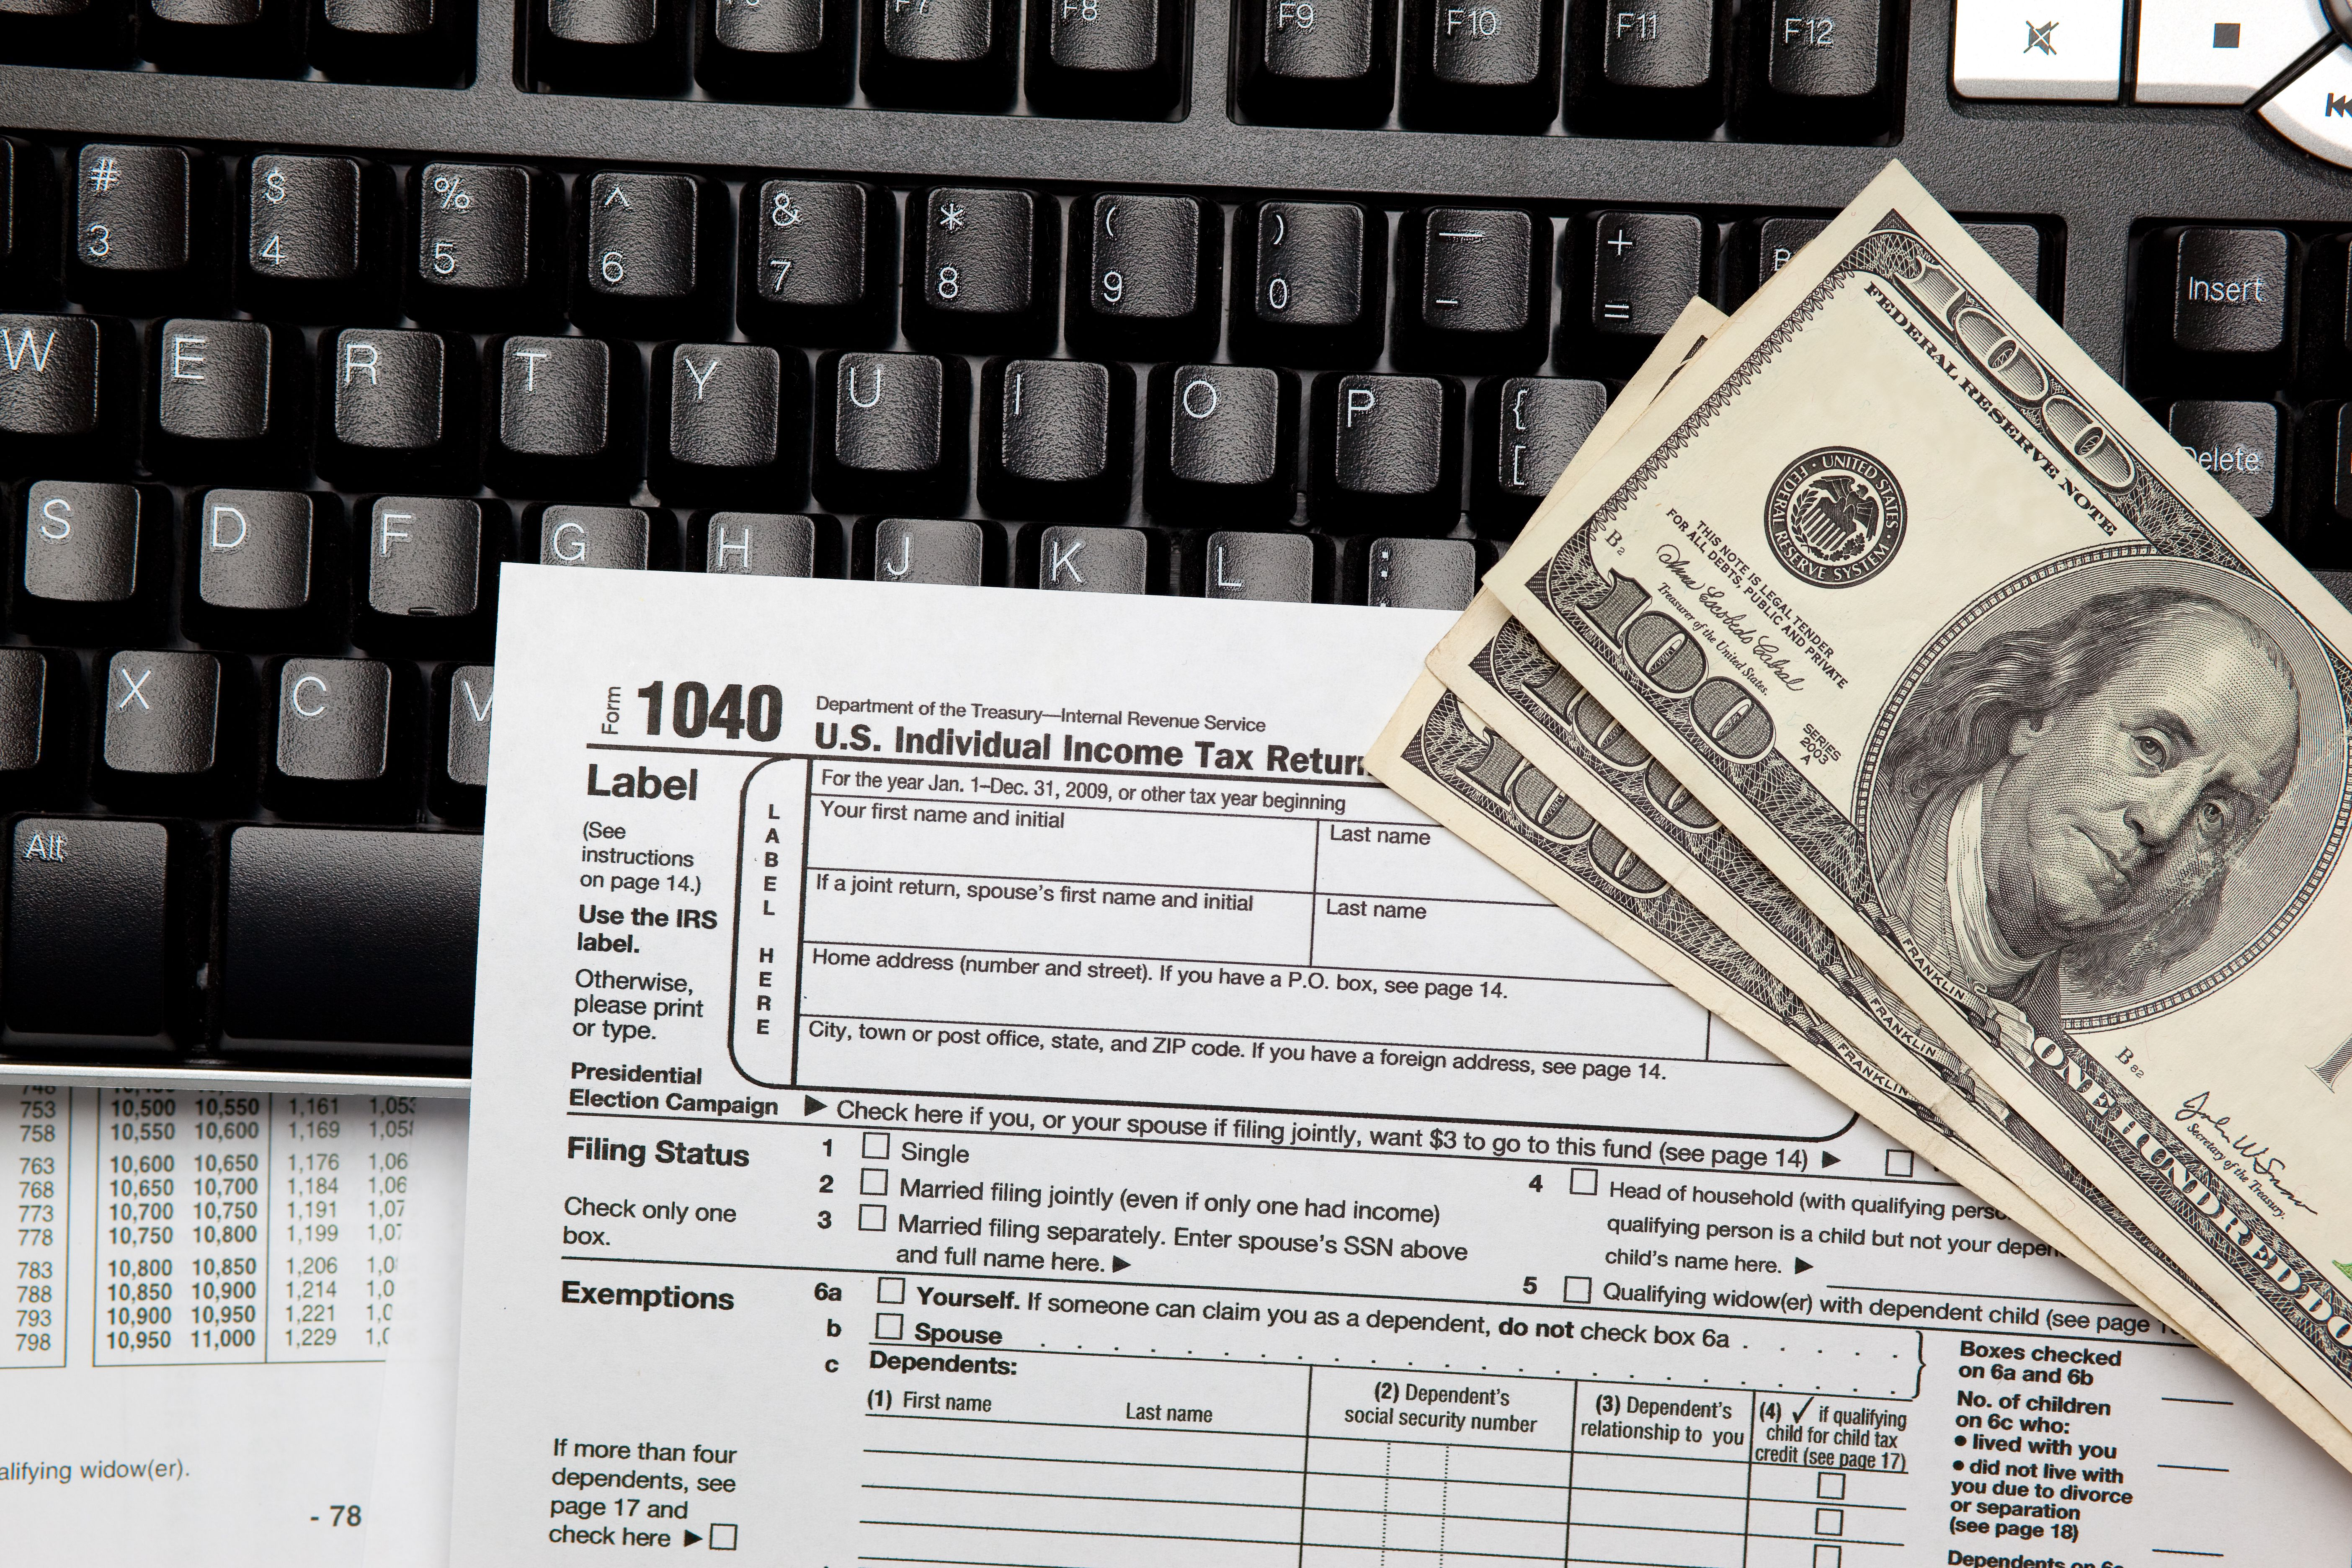 Setting up an IRS online account is well worth your while